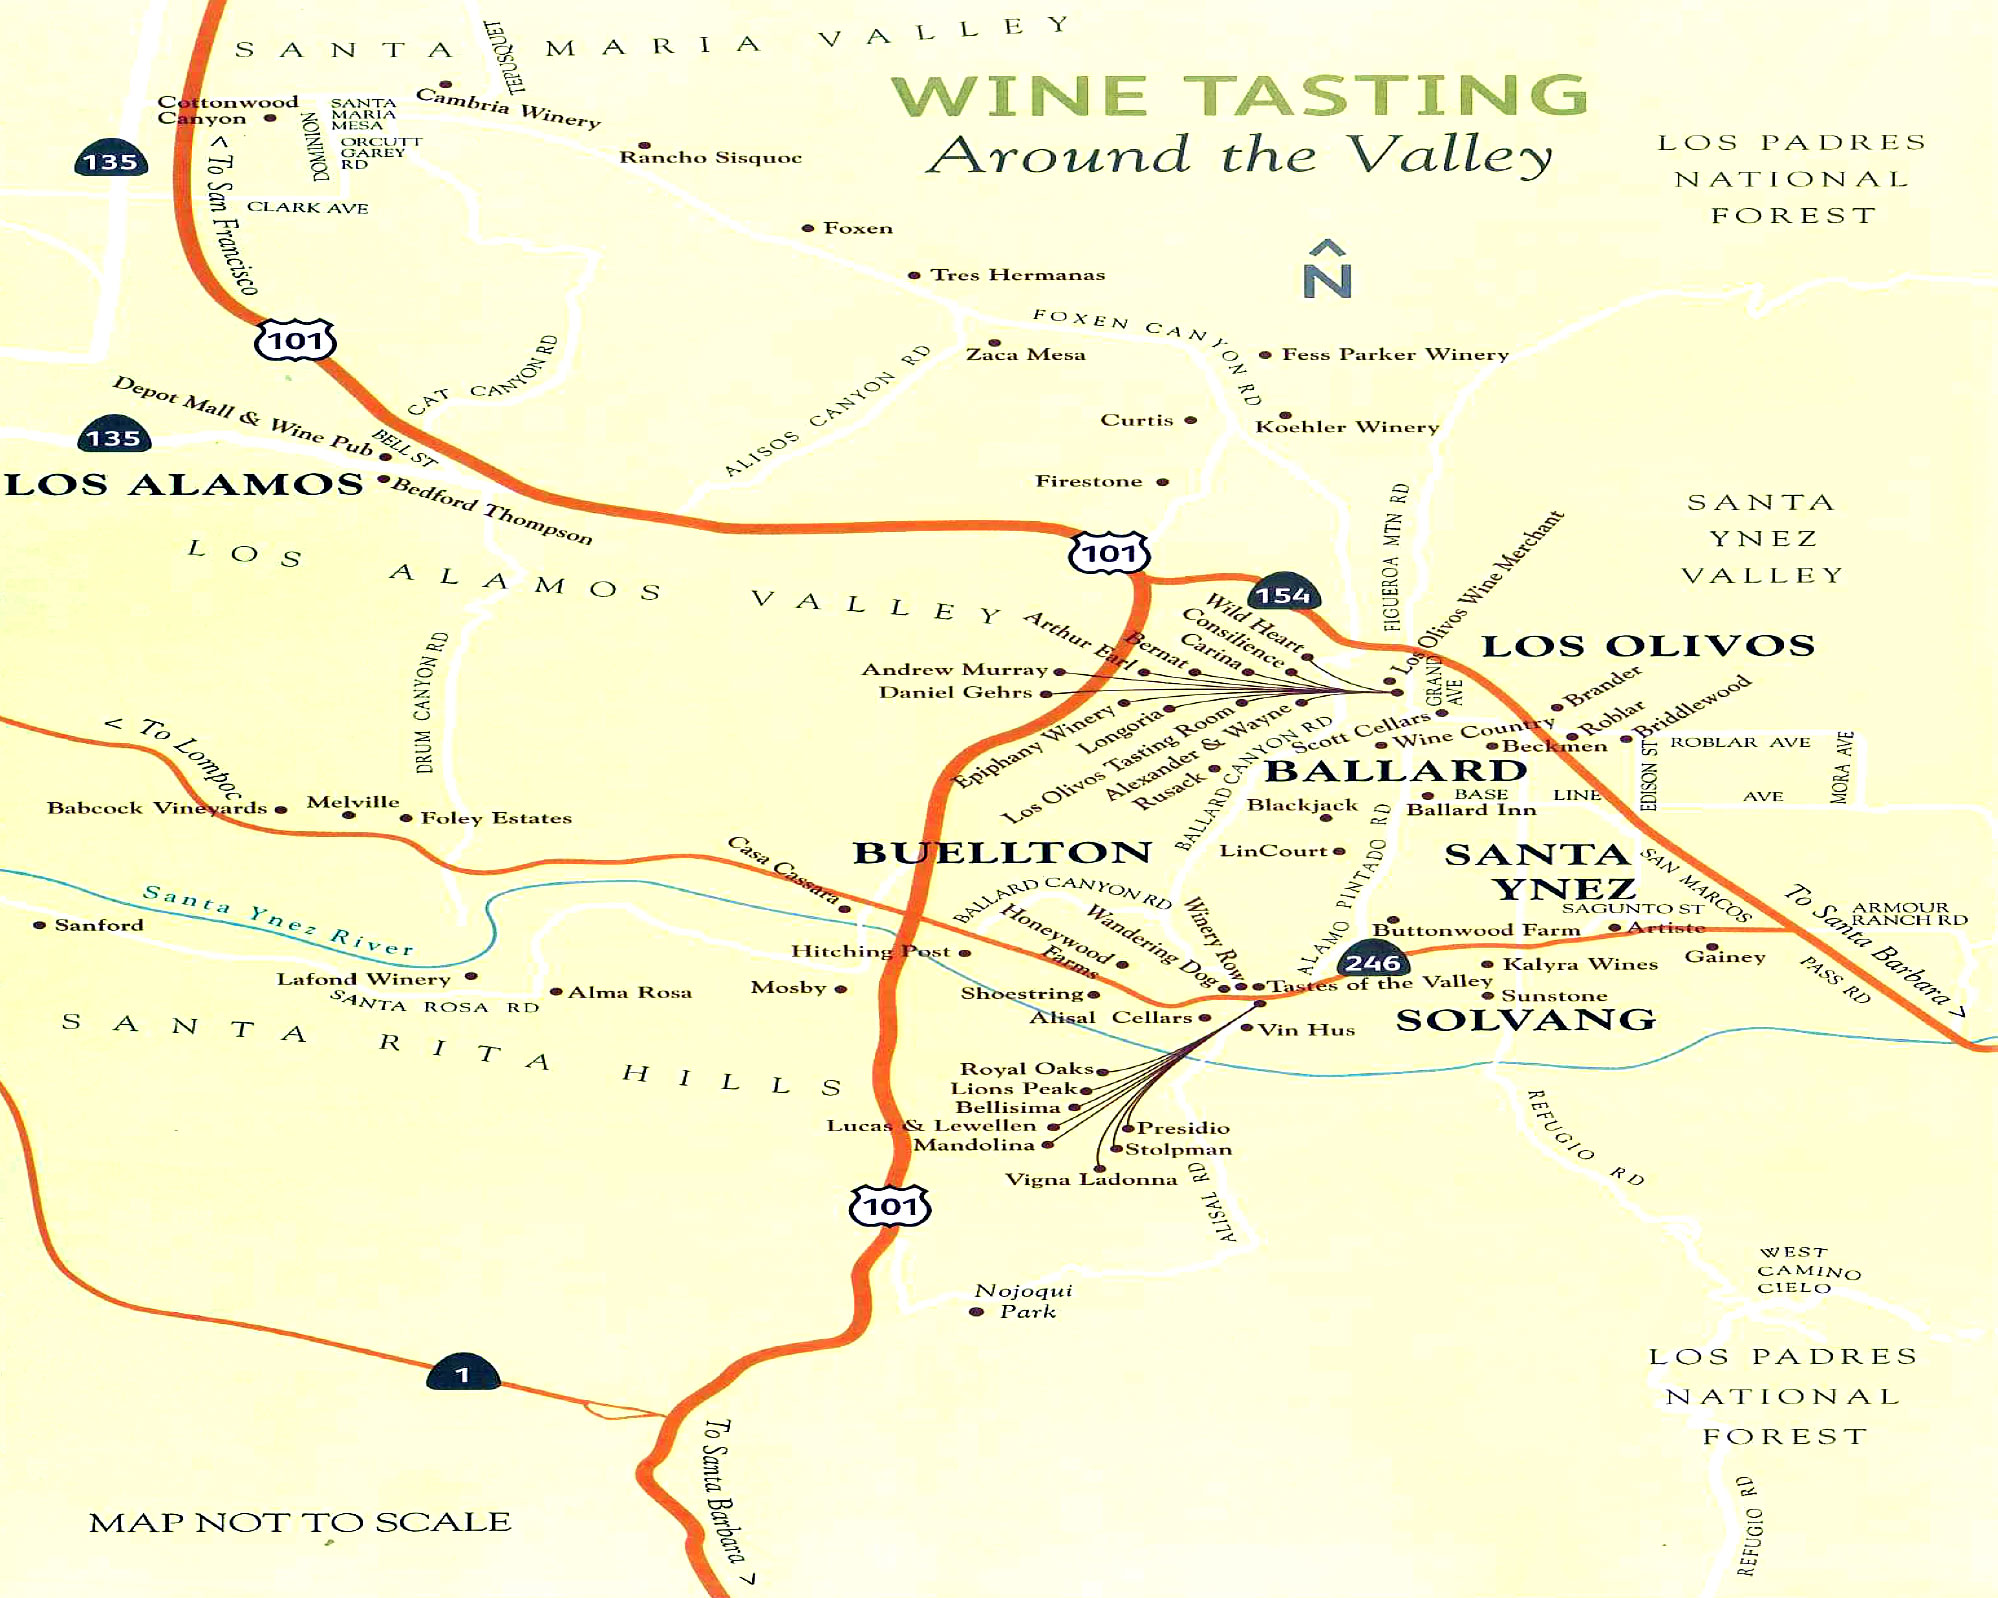 Maps - Los Angeles Tours - Your guide to best sightseeing ... Santa Barbara Wine Country Map on carneros wine country map, finger lakes wine country map, amador wine country map, sonoma wine country map, los alamos wine country map, monterey wine country map, georgia wine country map, charlottesville wine country map, colorado wine country map, austin wine country map, long island wine country map, new york wine country map, mendocino wine country map, lodi wine country map, ca wine country map, temecula wine country map, healdsburg wine country map, hudson valley wine country map, foxen canyon road wine trail map, sierra foothills wine country map,